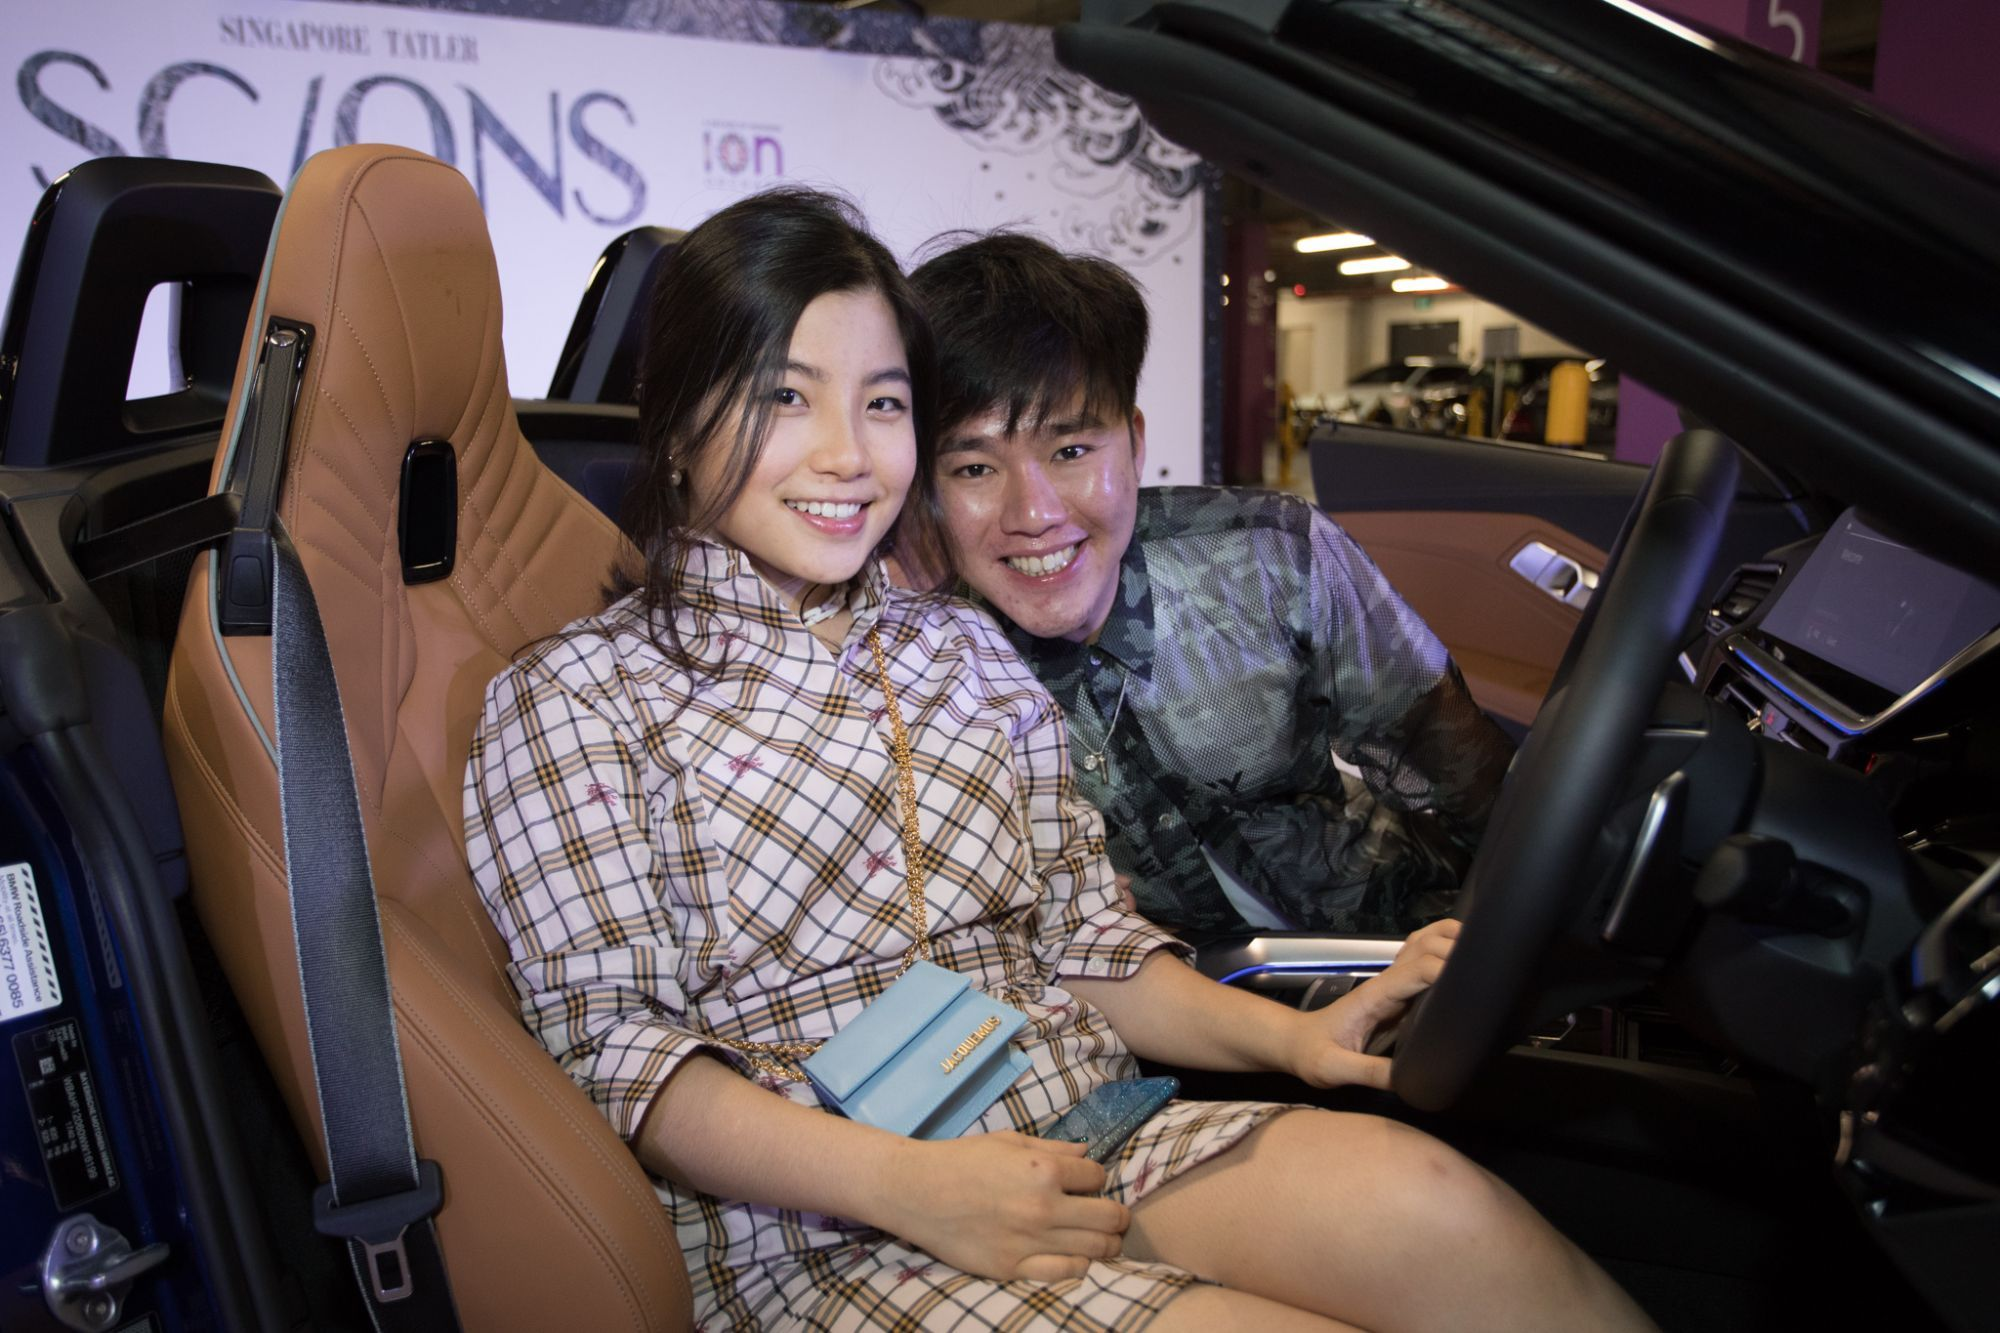 Watch: Inside The Singapore Tatler Scions Party